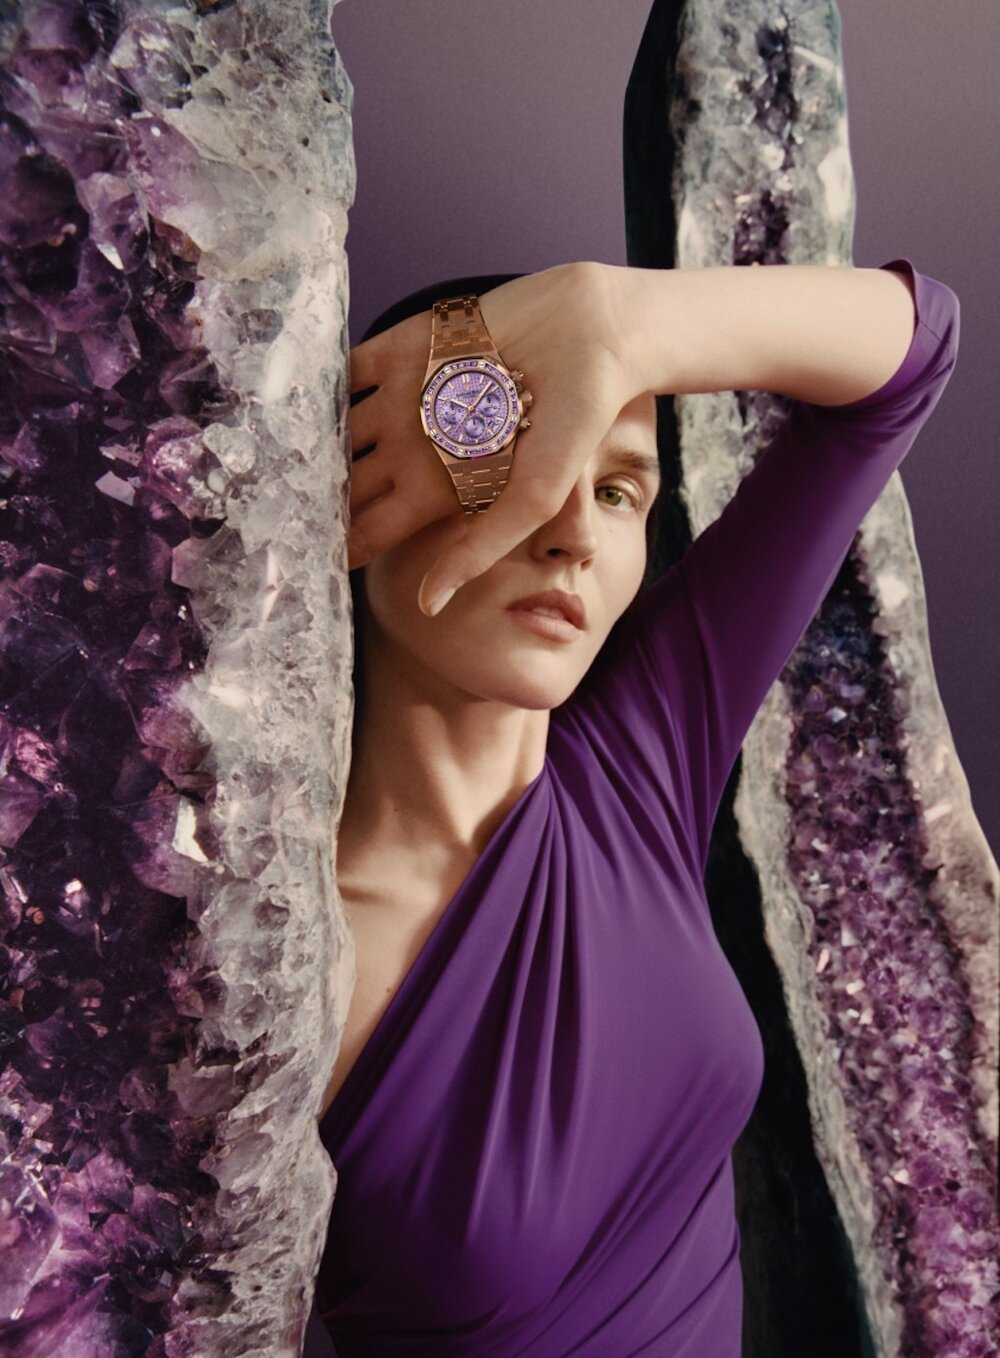 Audemars Piguet's Royal Oak Amethyst Self-winding Chronograph plays with colour and light